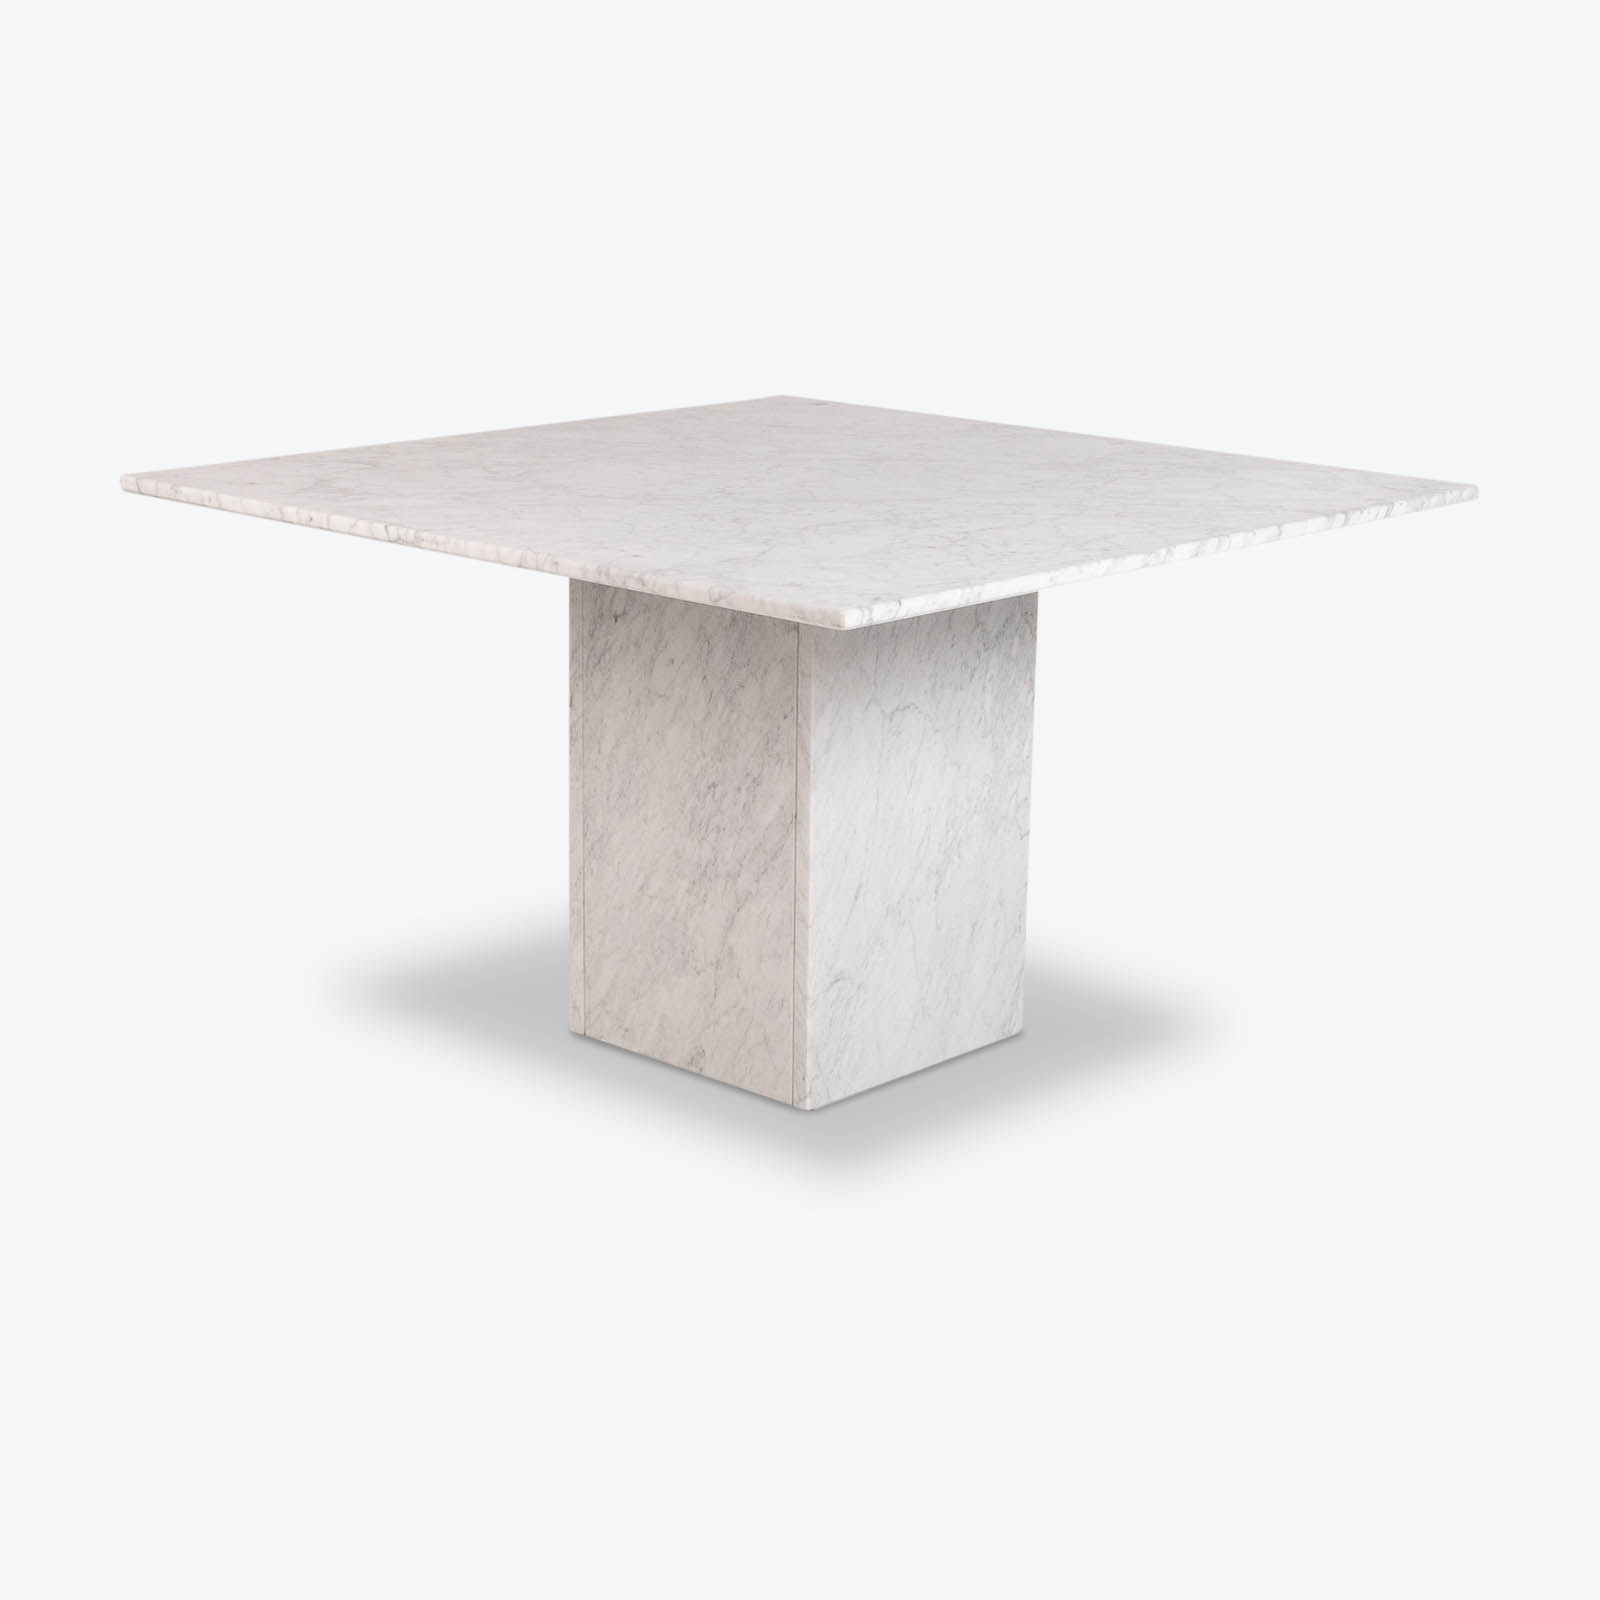 Square Dining Table In White Carrara Marble, Italy, 1980s Hero